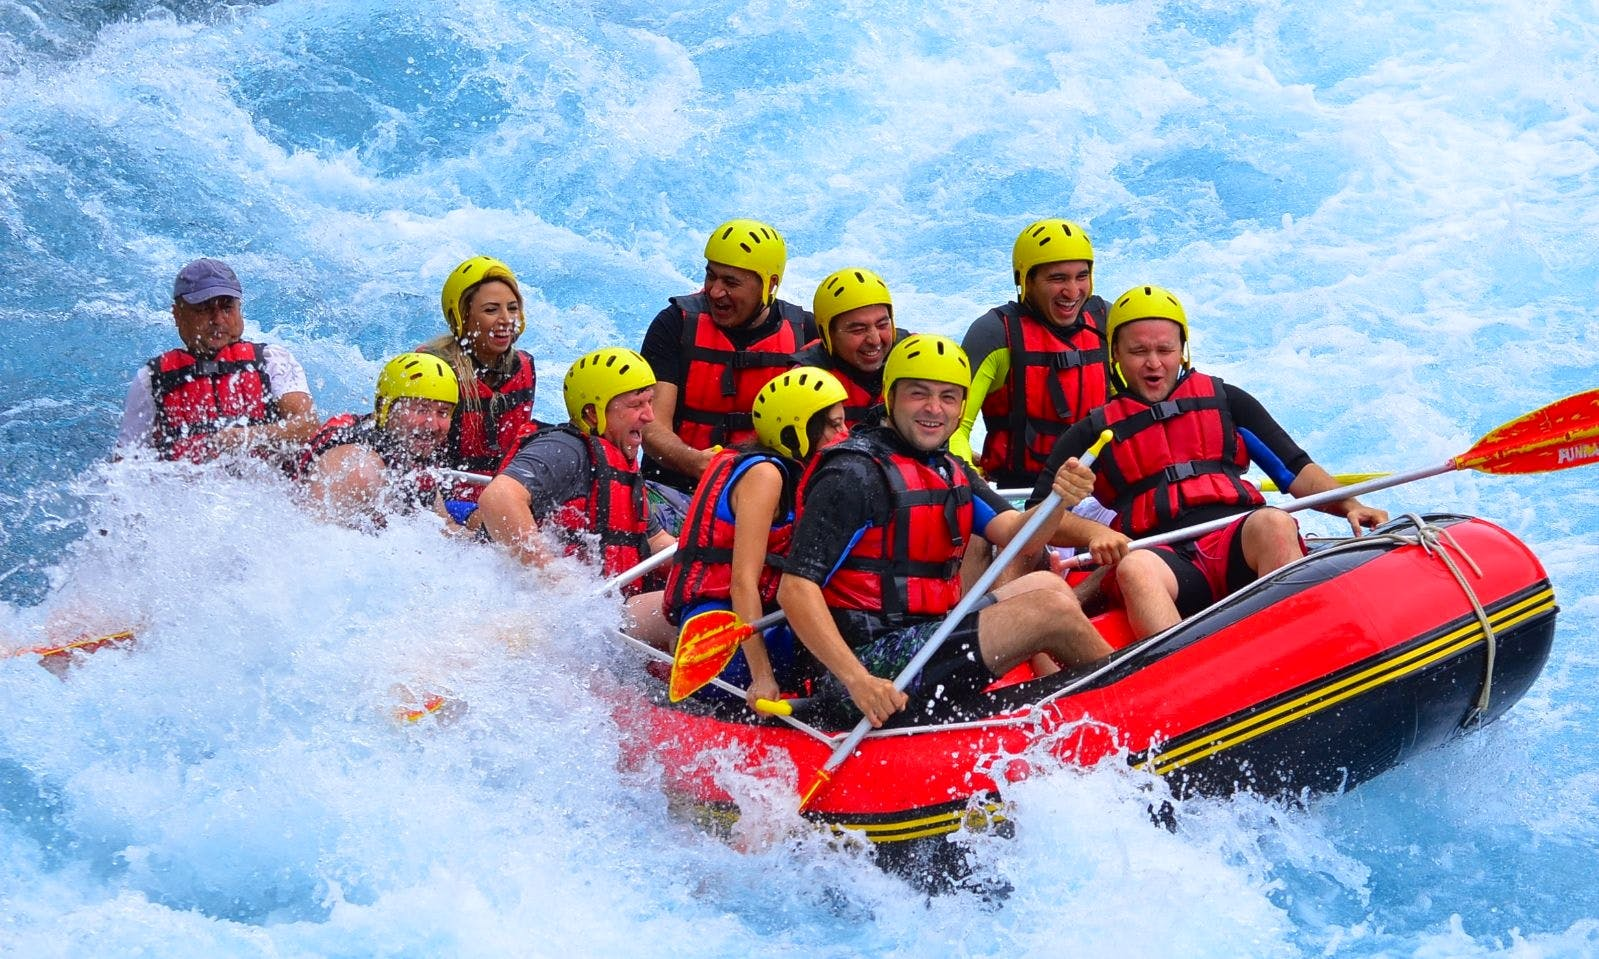 Hit the water Rafting in Antalya, Turkey